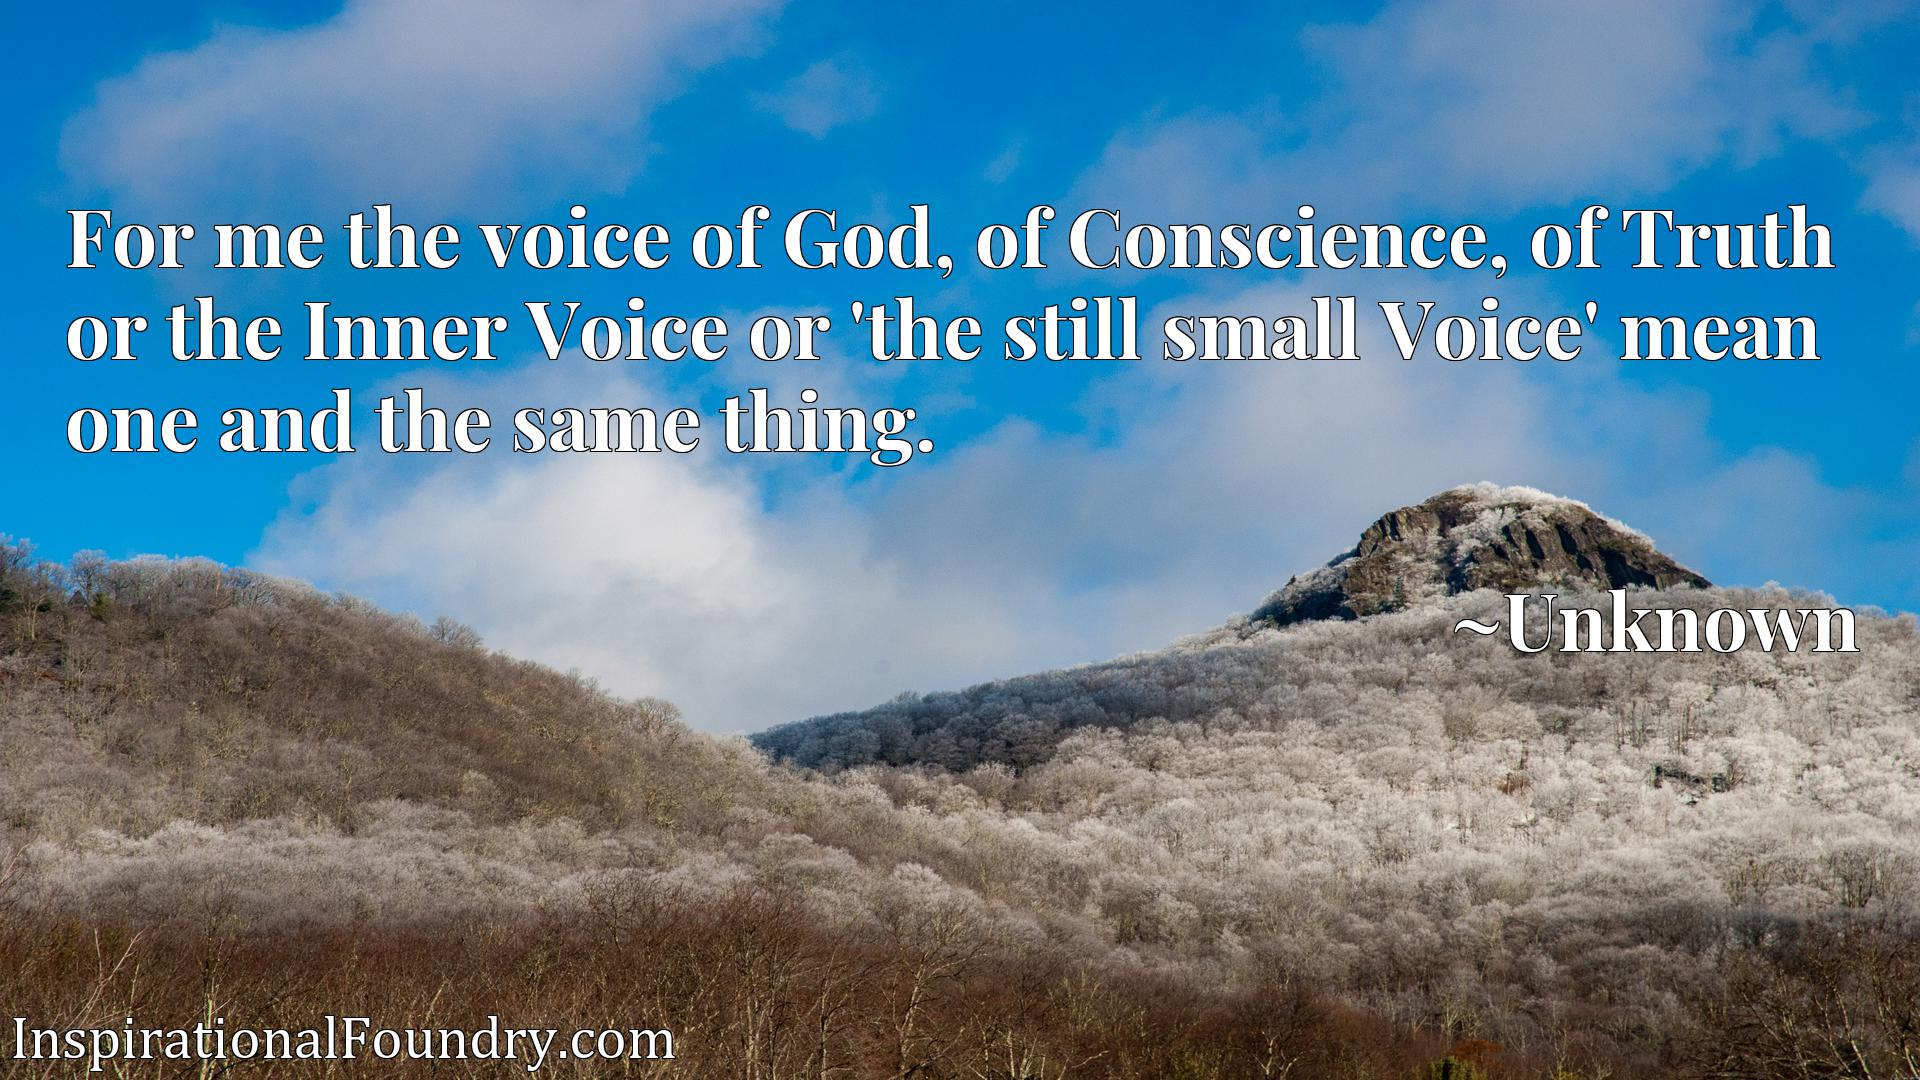 For me the voice of God, of Conscience, of Truth or the Inner Voice or 'the still small Voice' mean one and the same thing.